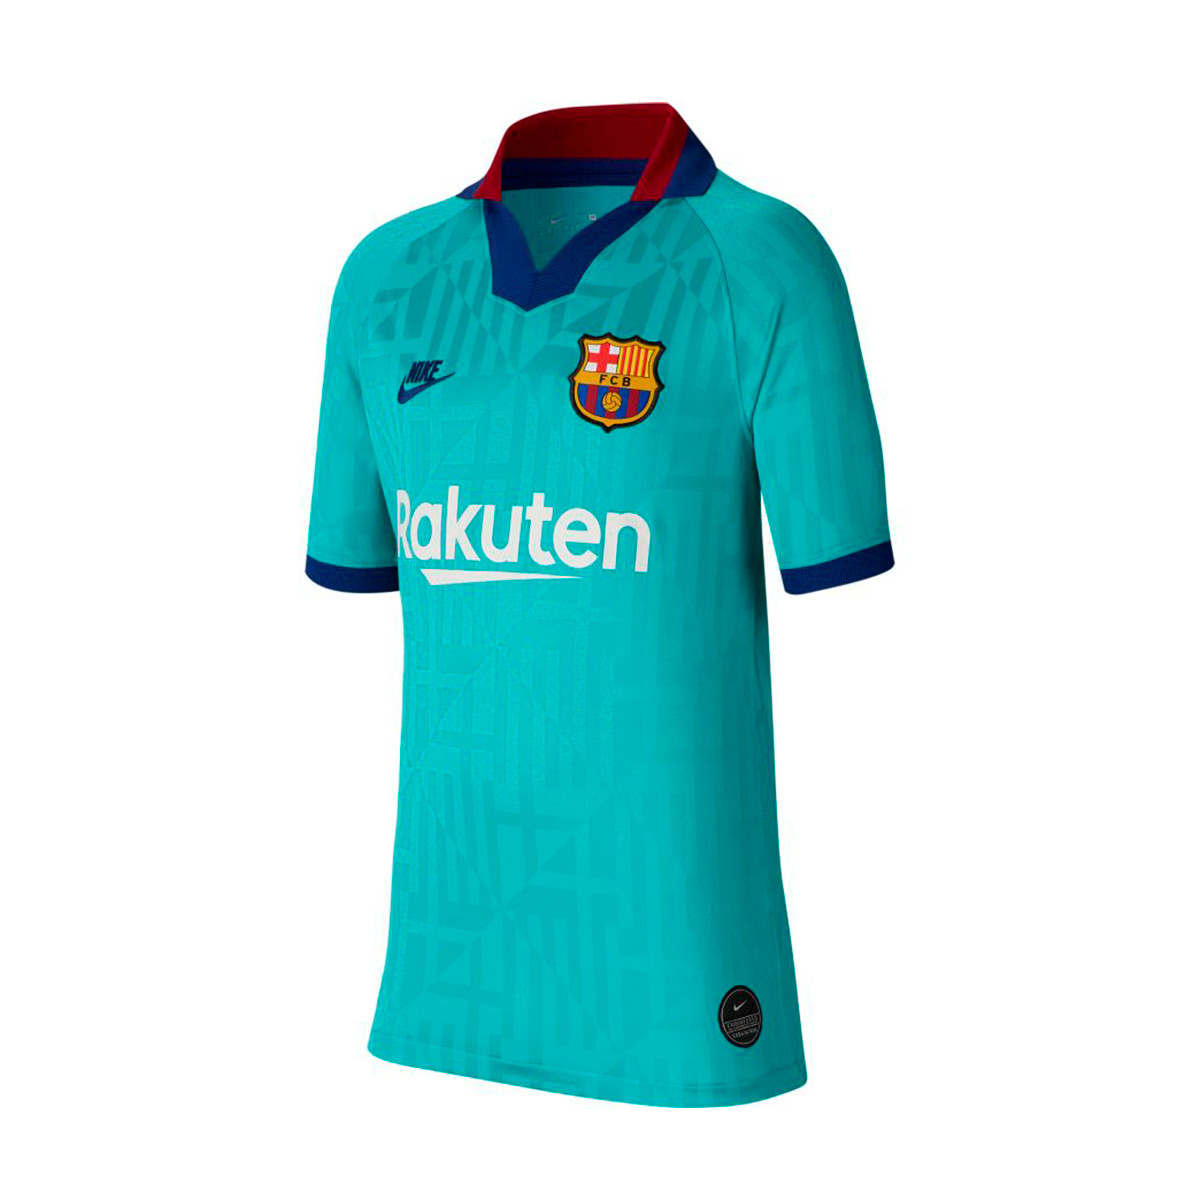 programa Intentar Vinagre  Jersey Nike Kids FC Barcelona Breathe Stadium 2019-2020 Third Cabana-Deep  royal blue - Football store Fútbol Emotion